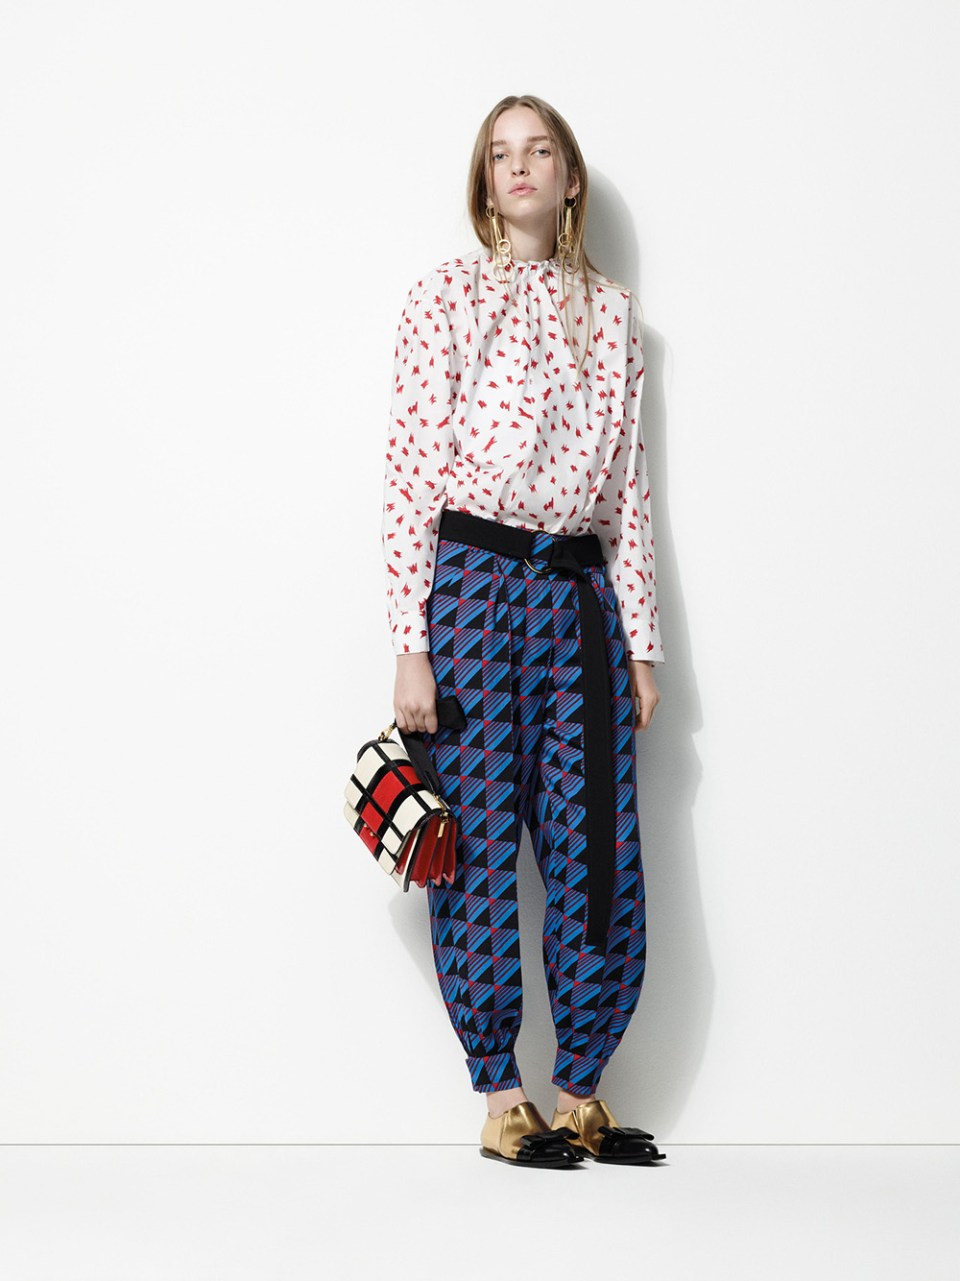 marni_pre_fall_2016_lookbook_20_jpg_4306_north_1382x_black